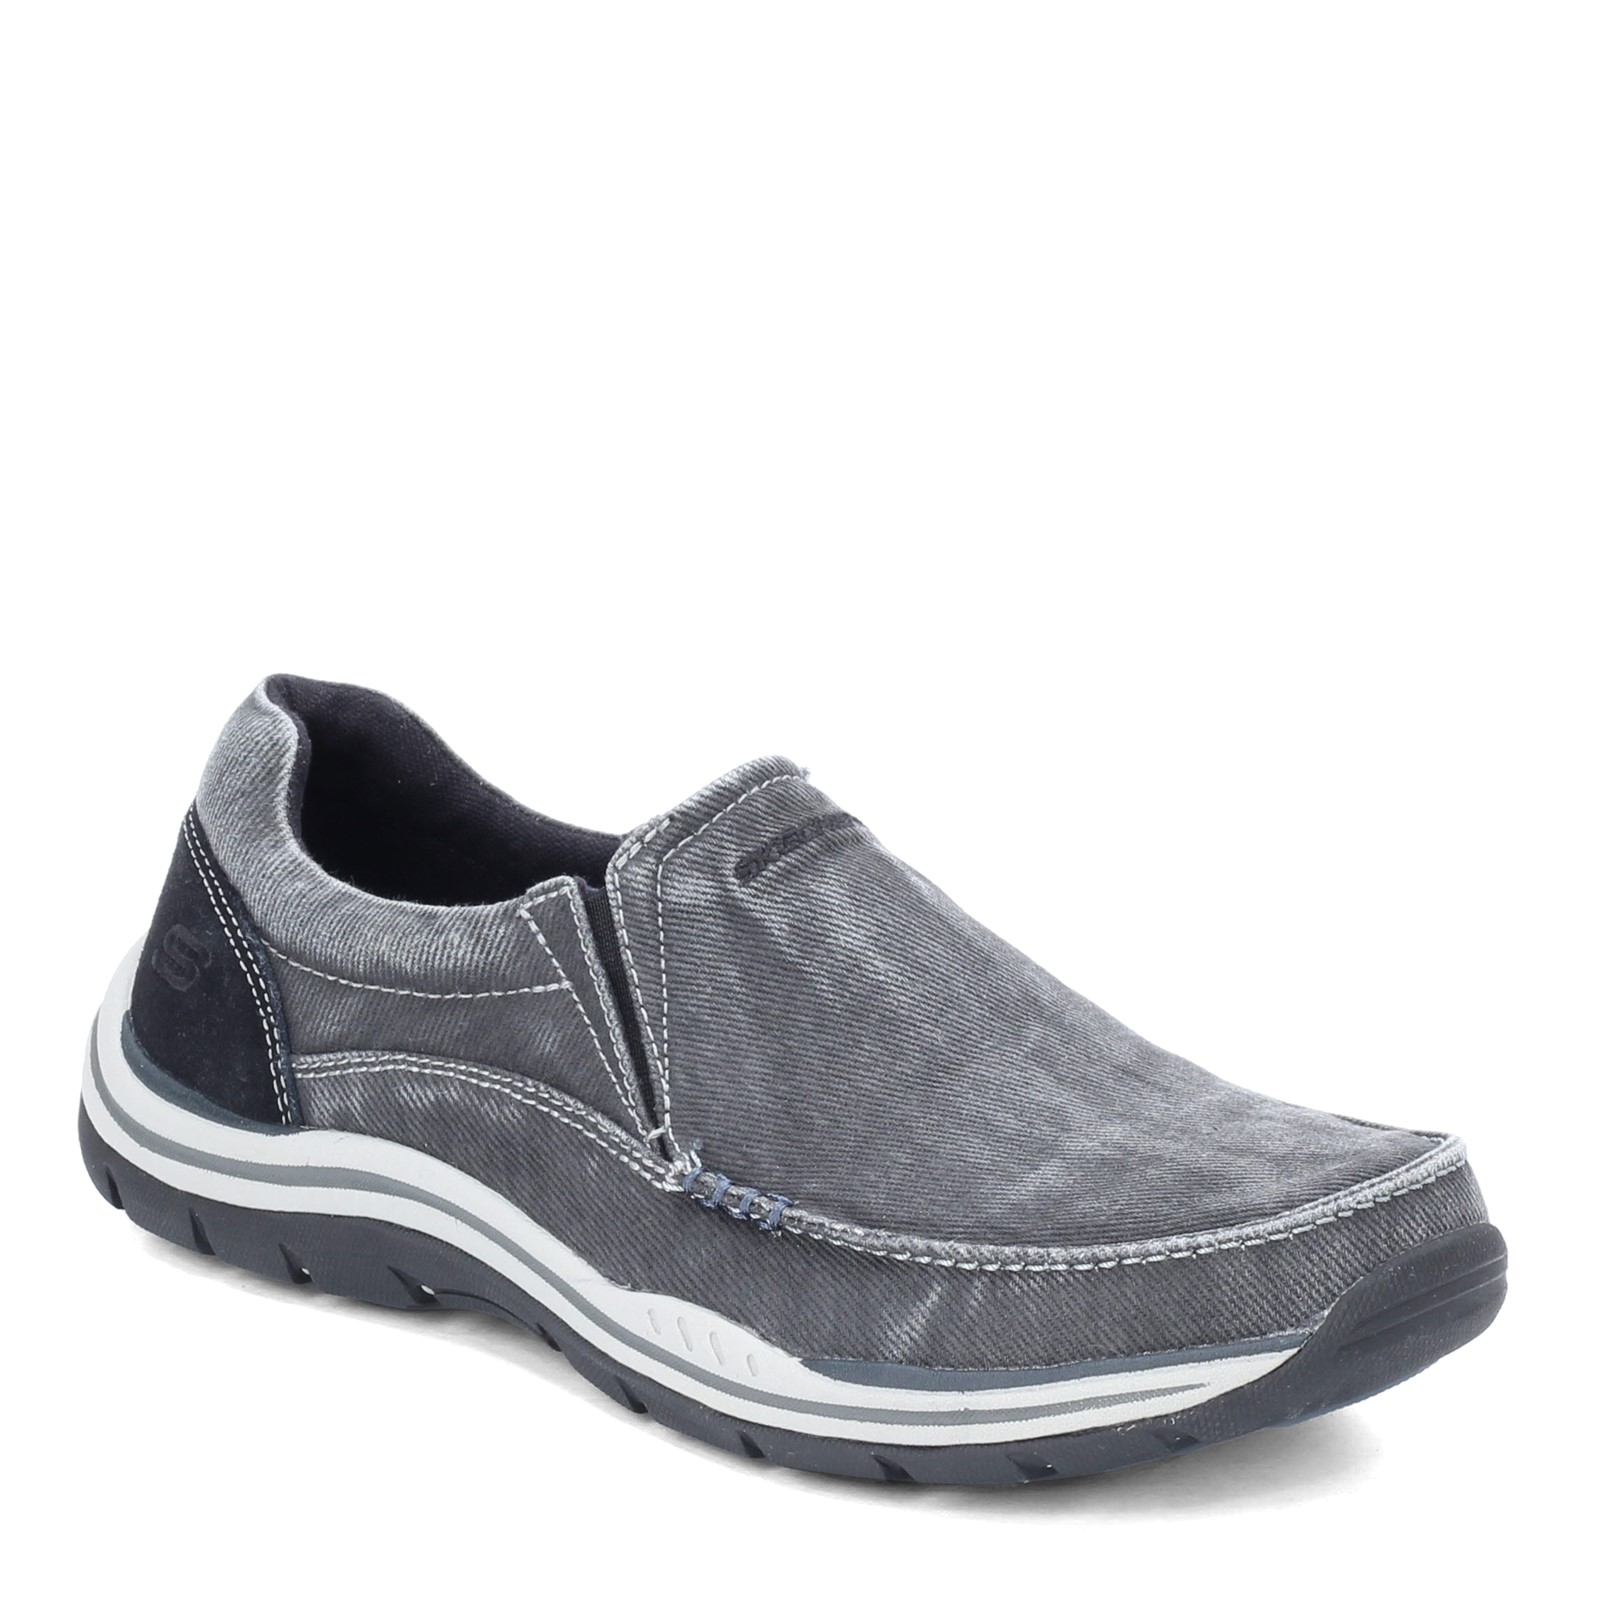 Men's Skechers, Relaxed Fit: Expected - Avillo Slip-On